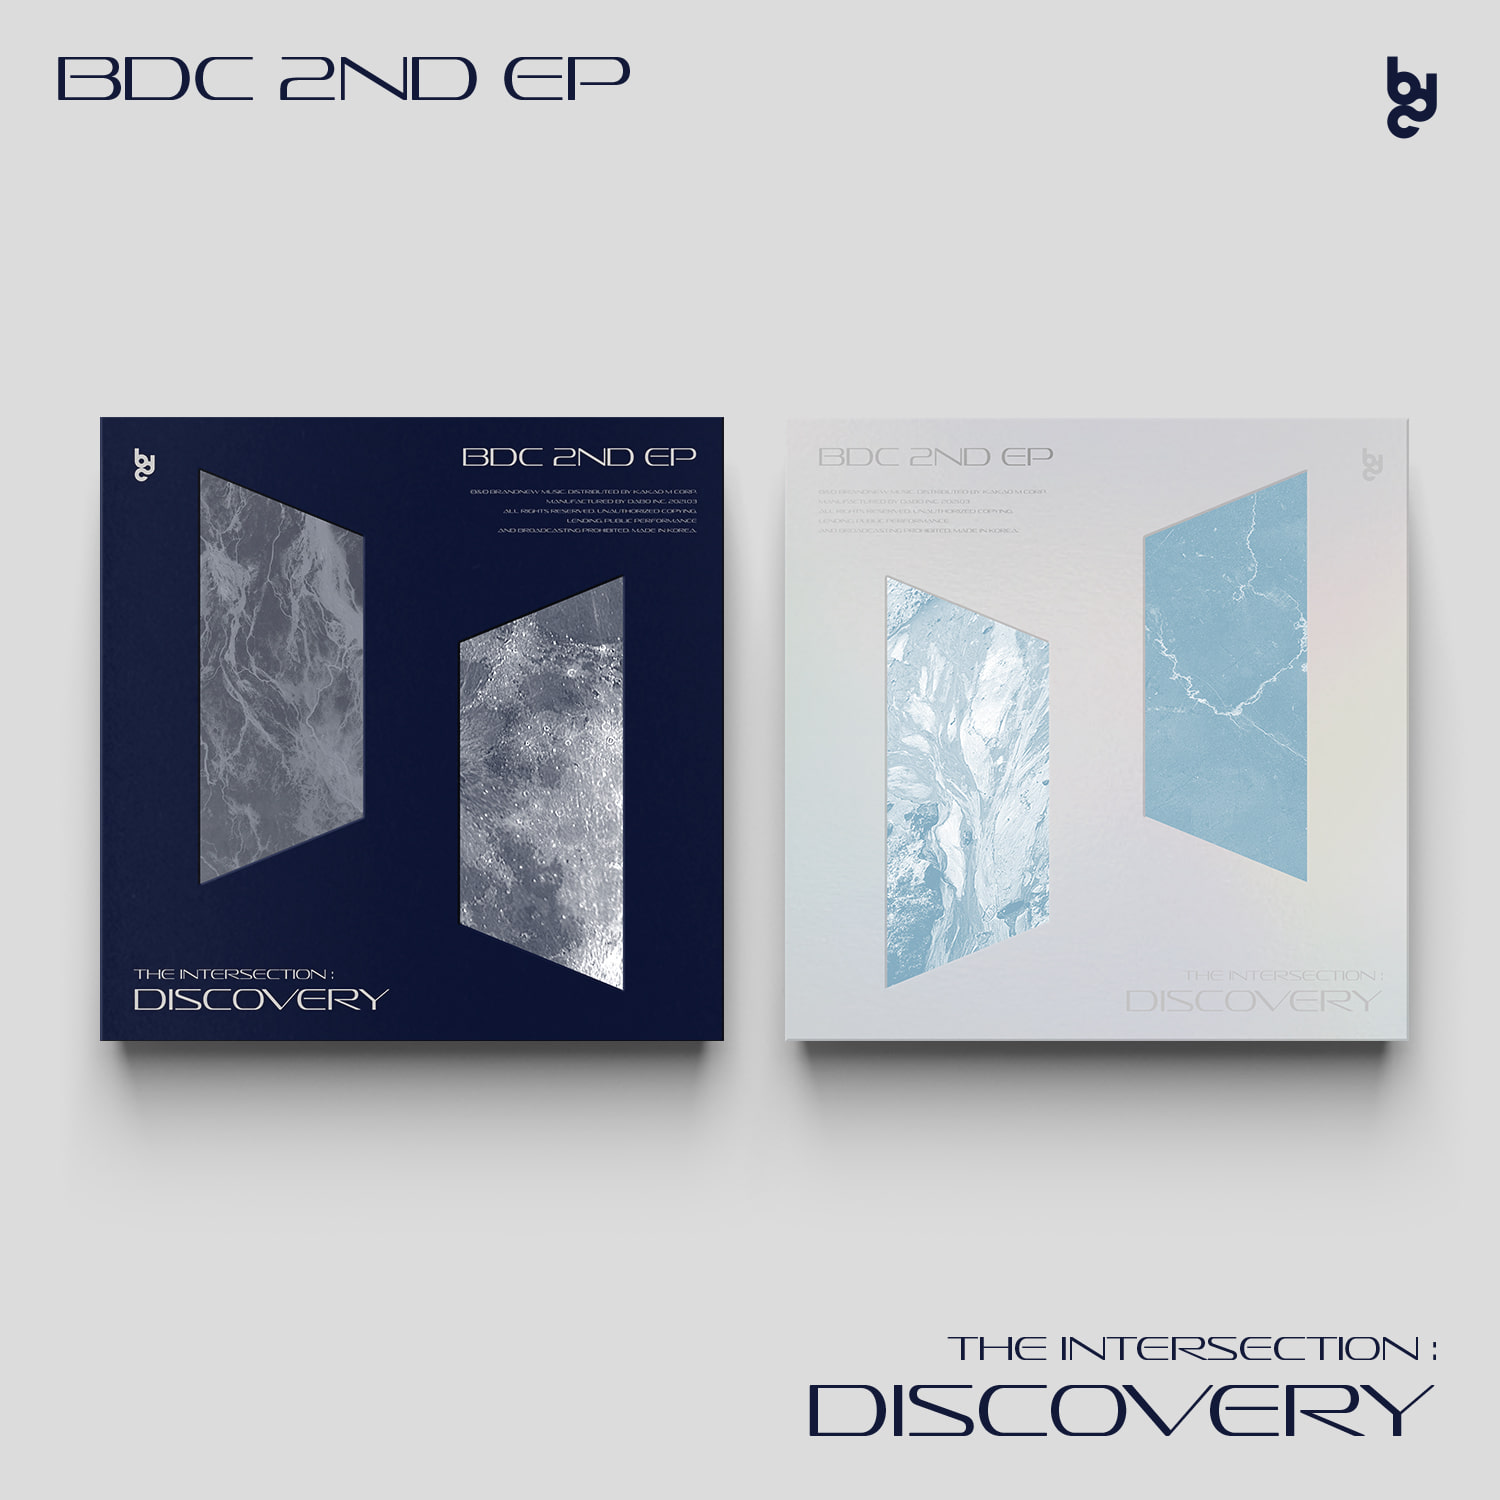 [PRE-ORDER] BDC - EP Album [THE INTERSECTION : DISCOVERY] (2CD SET)케이팝스토어(kpop store)